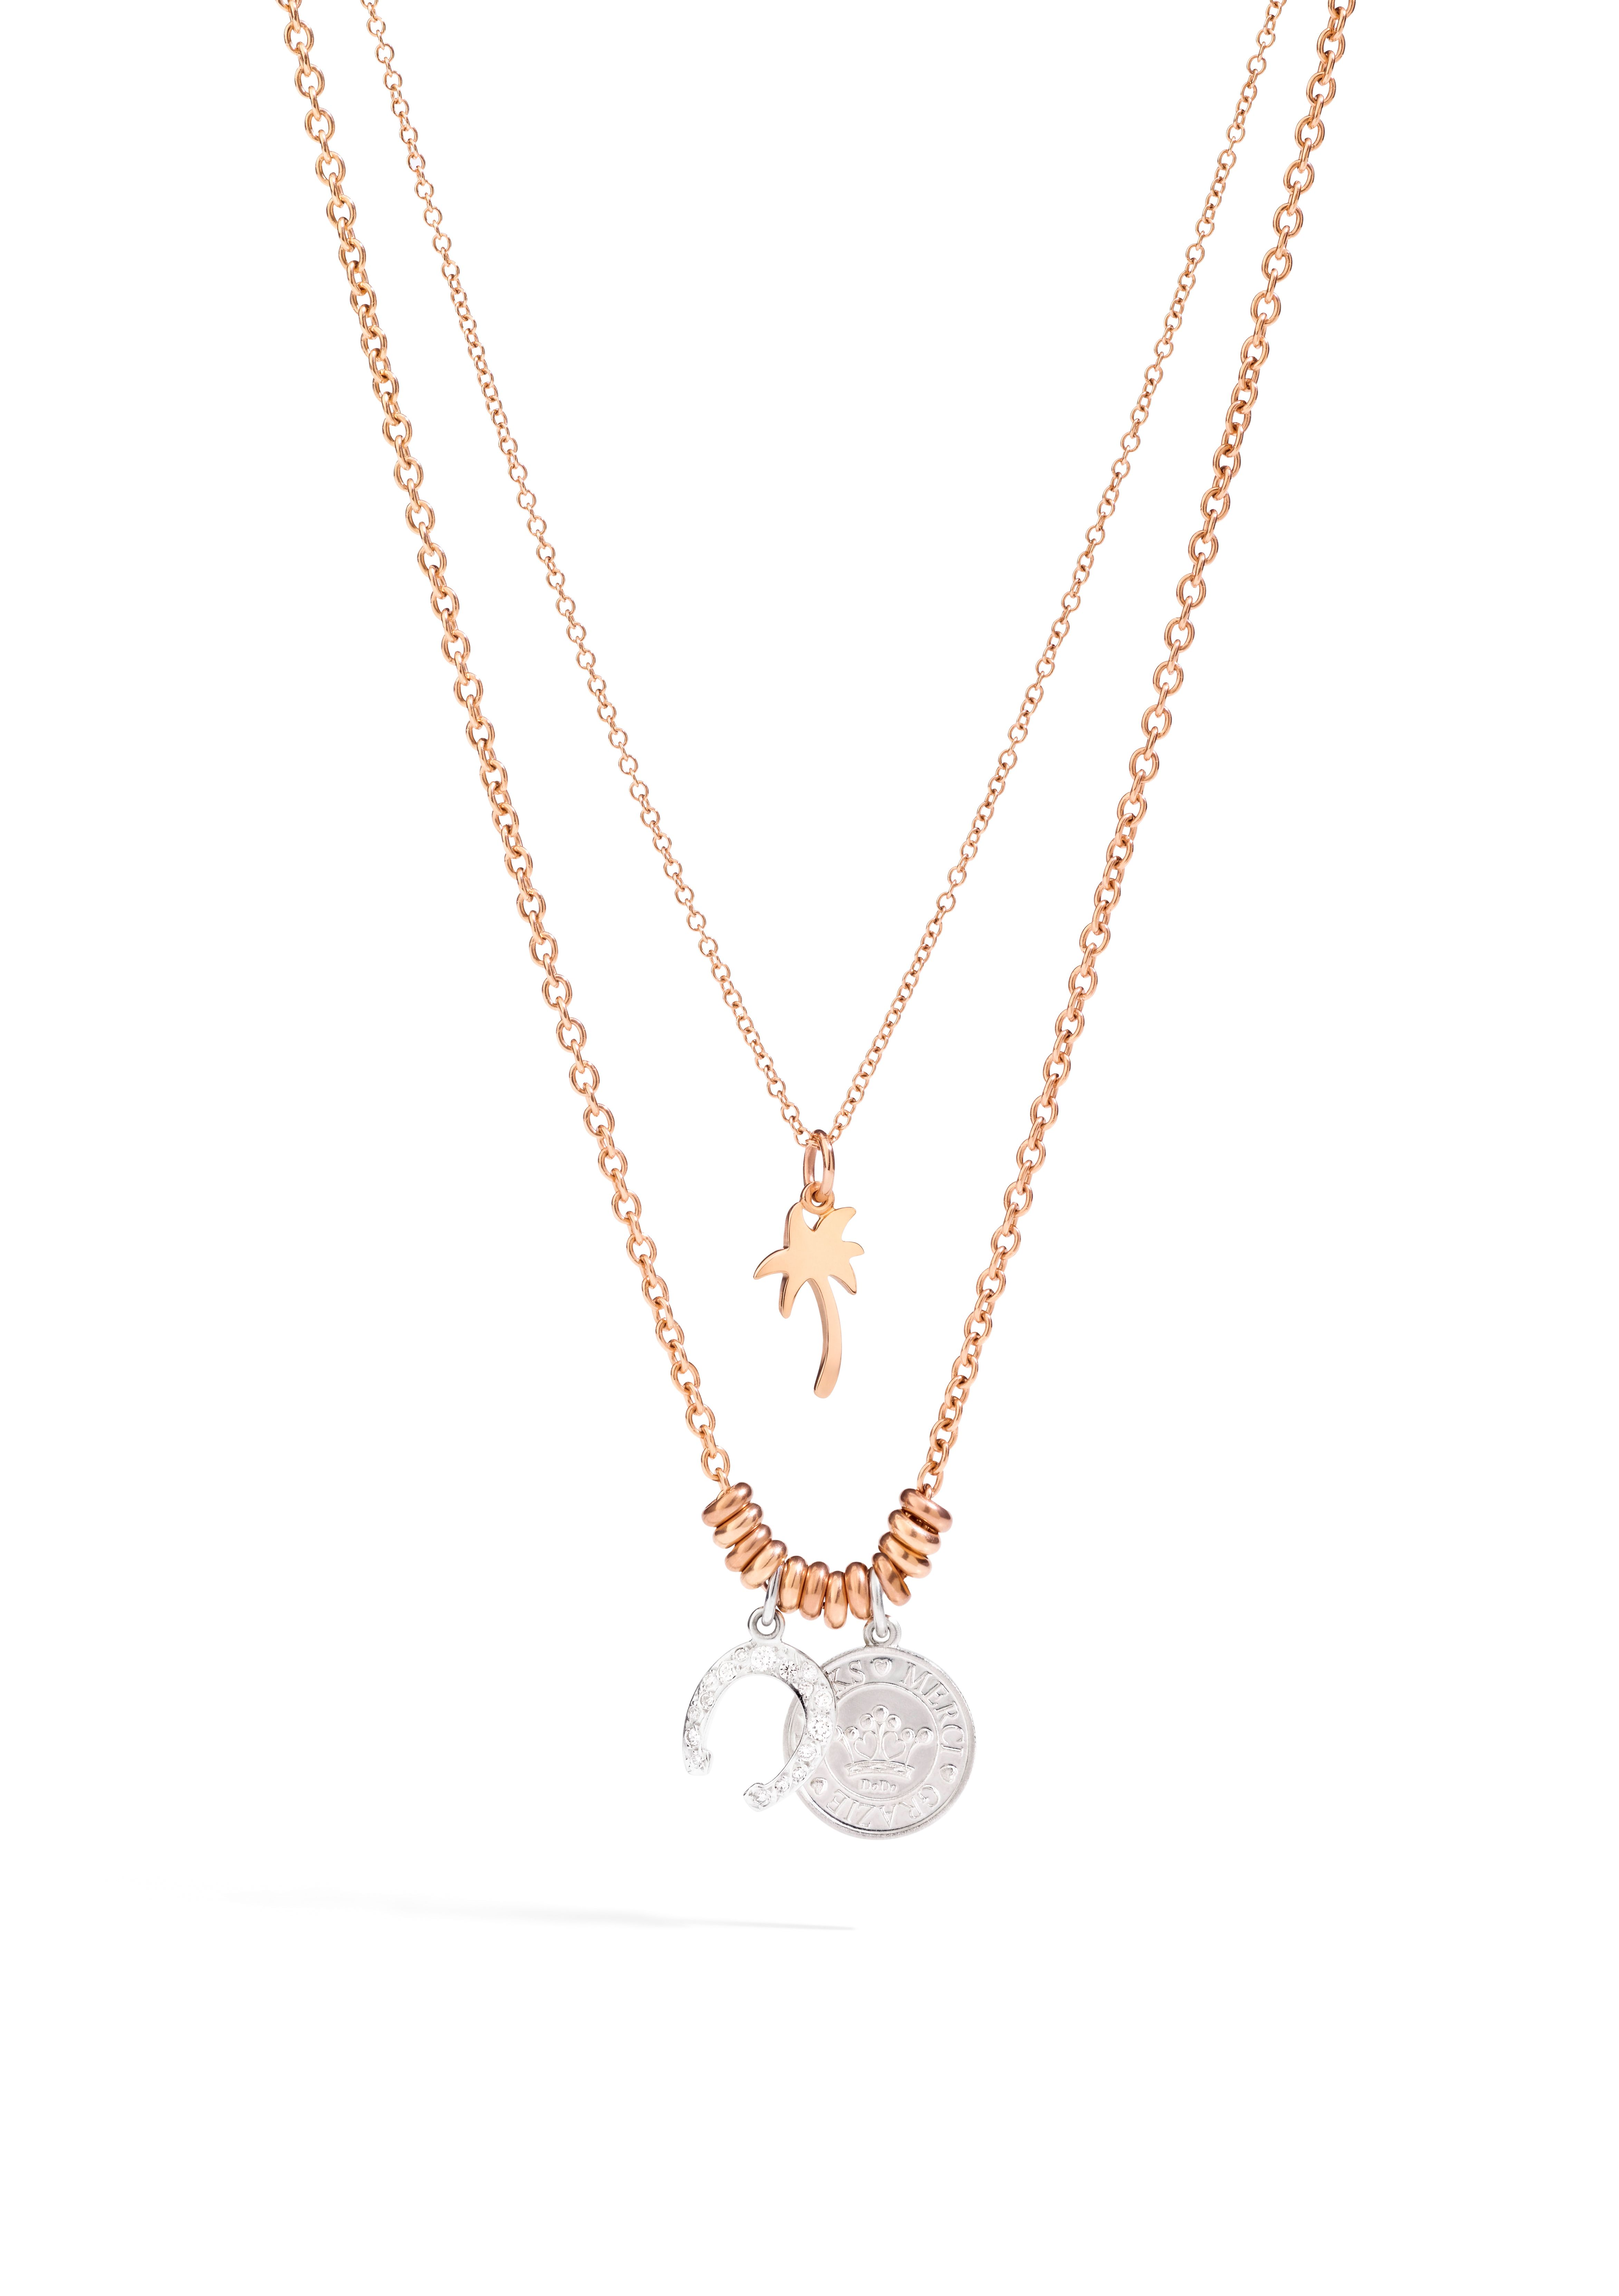 In rose gold, silver or white gold and diamonds, keep the luck with you  with Dodo necklace and Lucky charms. Discover Dodo Horseshoe charm in white  gold and ... 2b5842321b